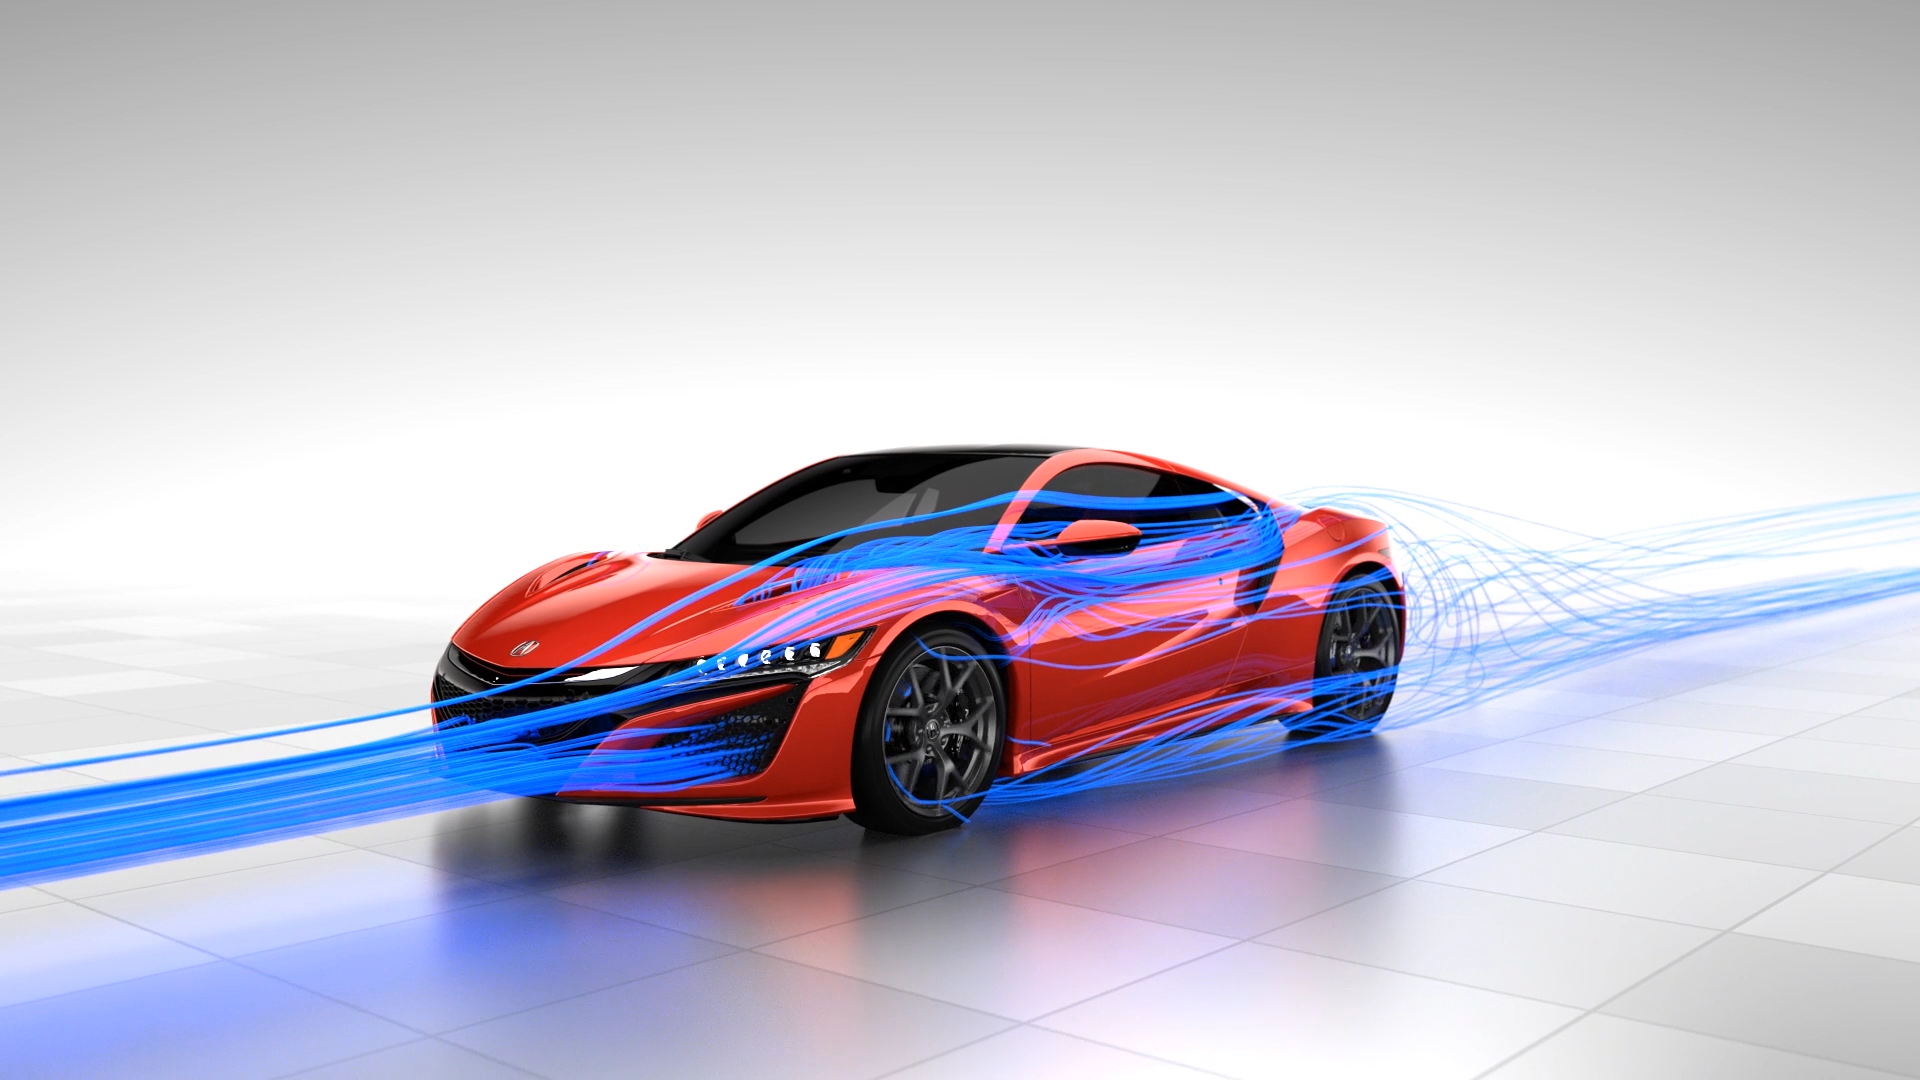 honda to build advanced wind tunnel at ohio state